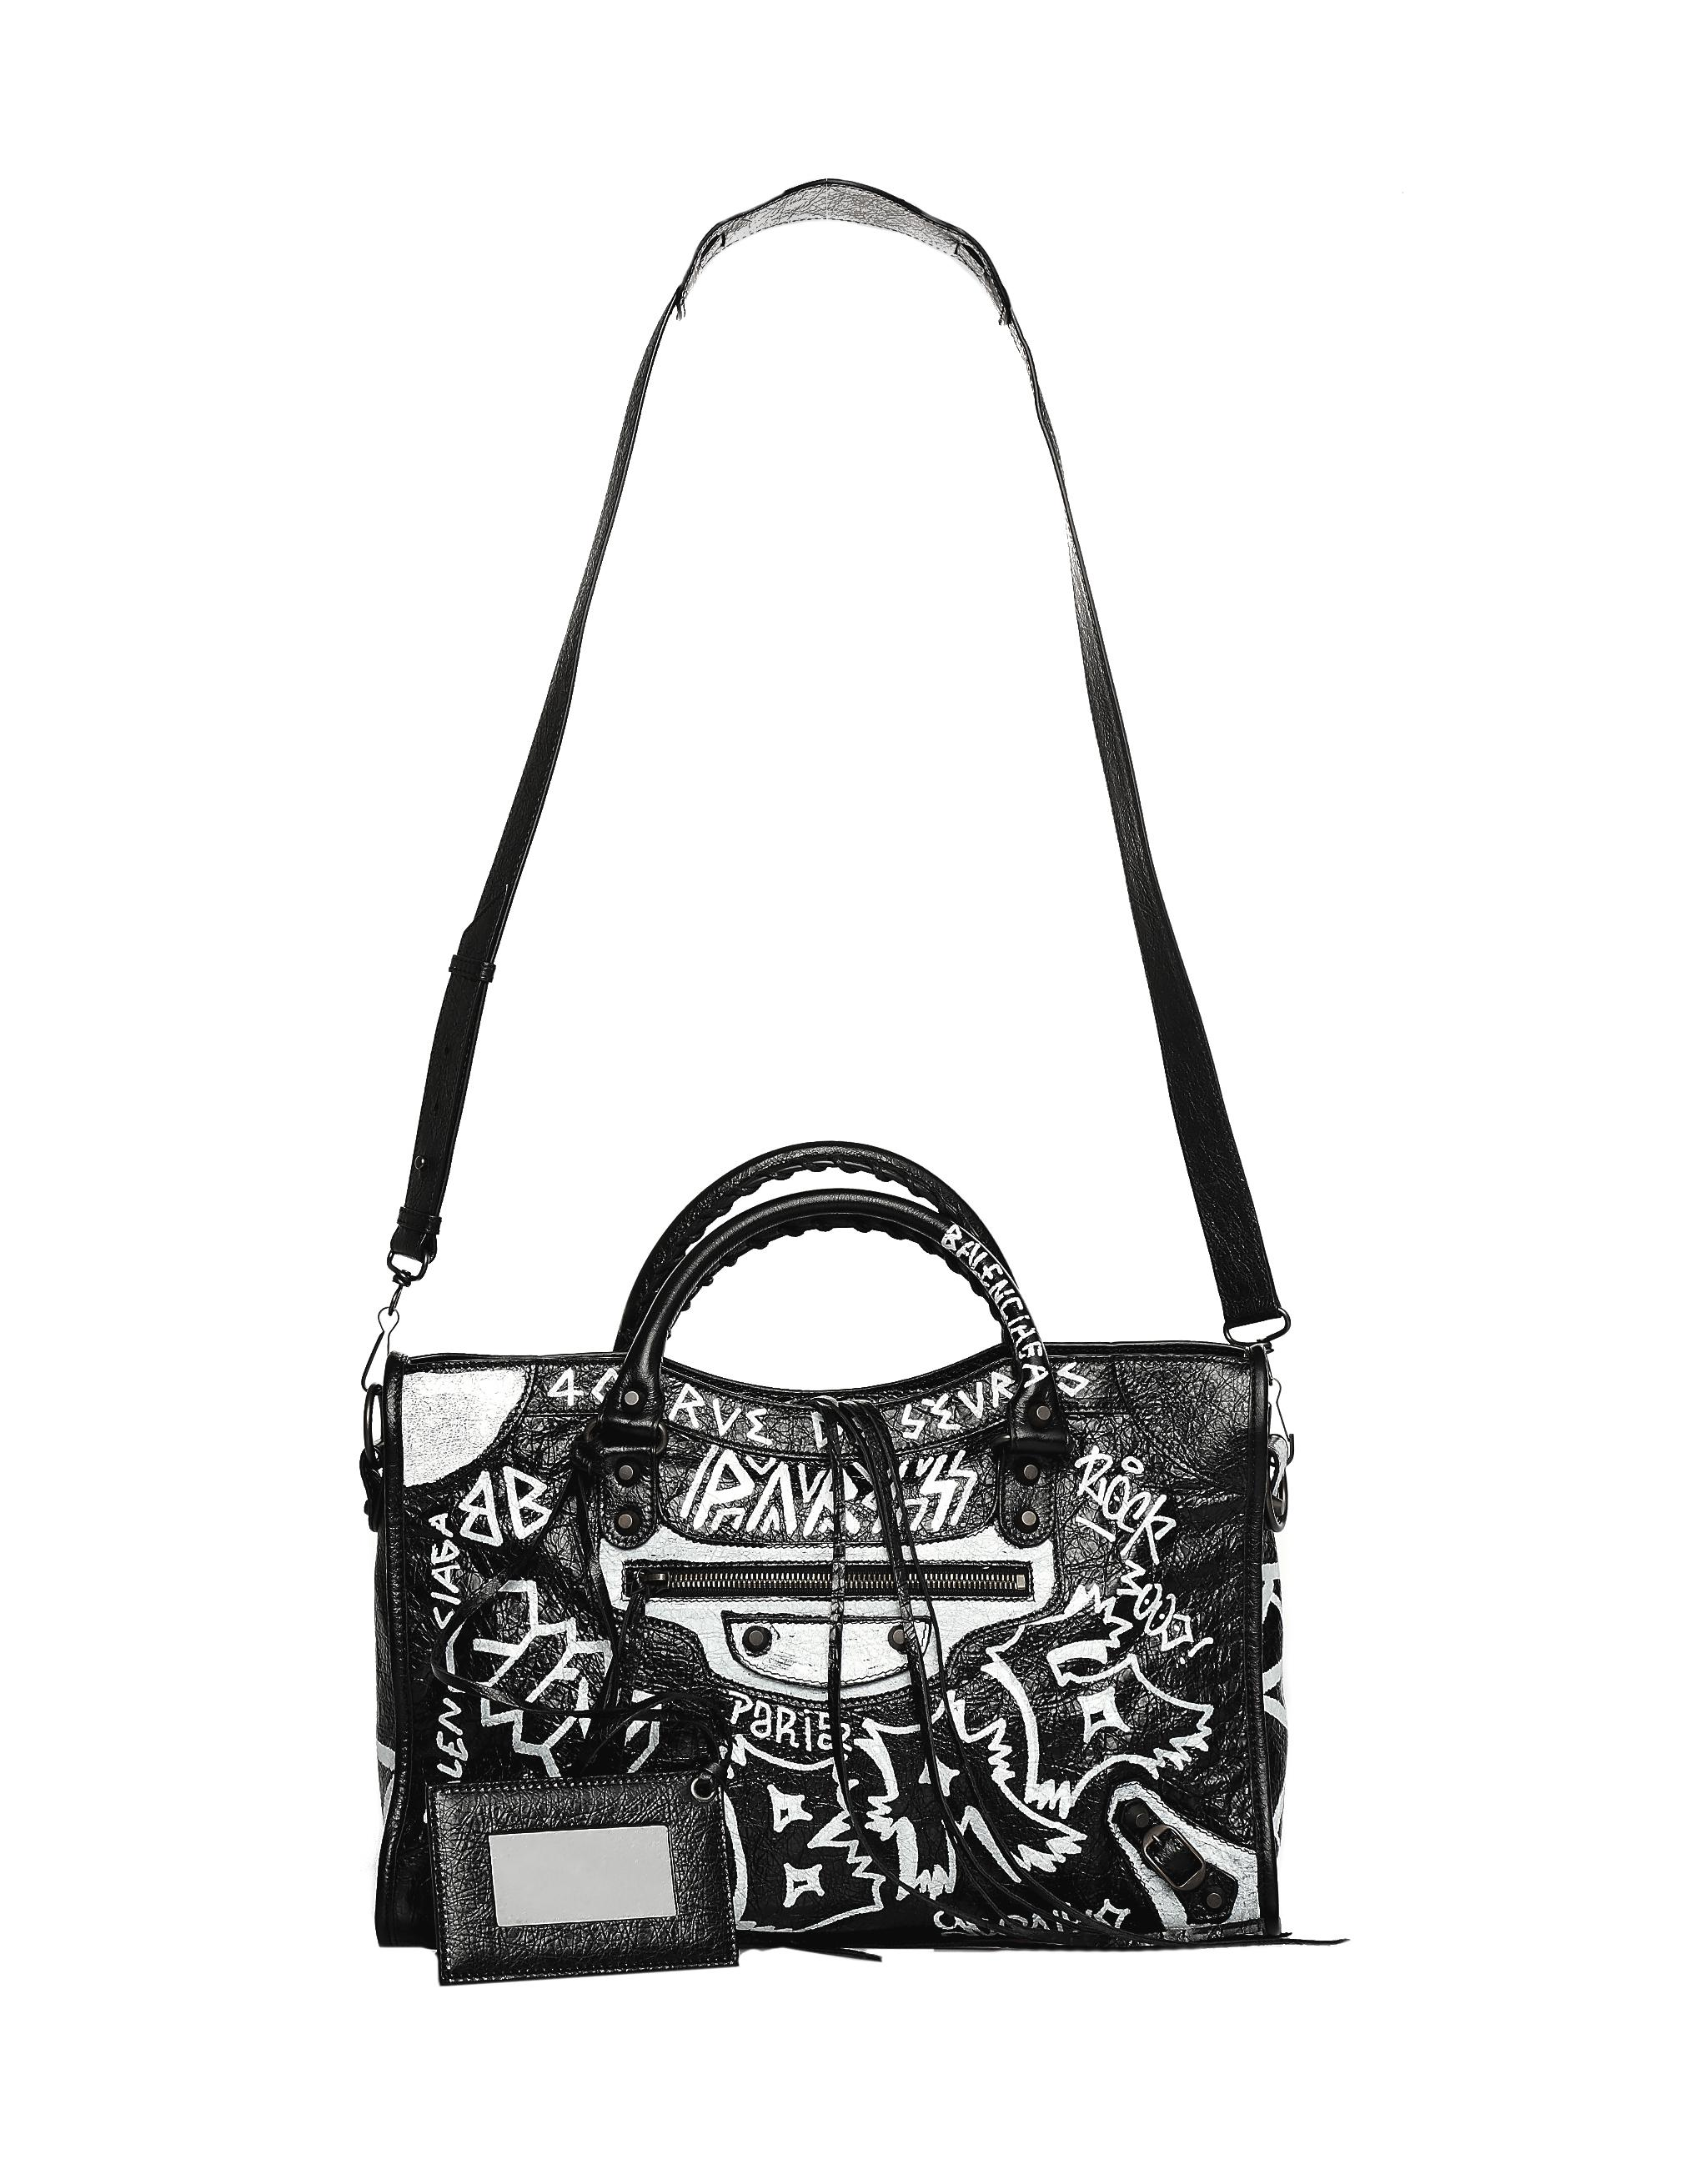 Lyst - Balenciaga Graffiti Classic City S Bag in Black 3758ef2fea021